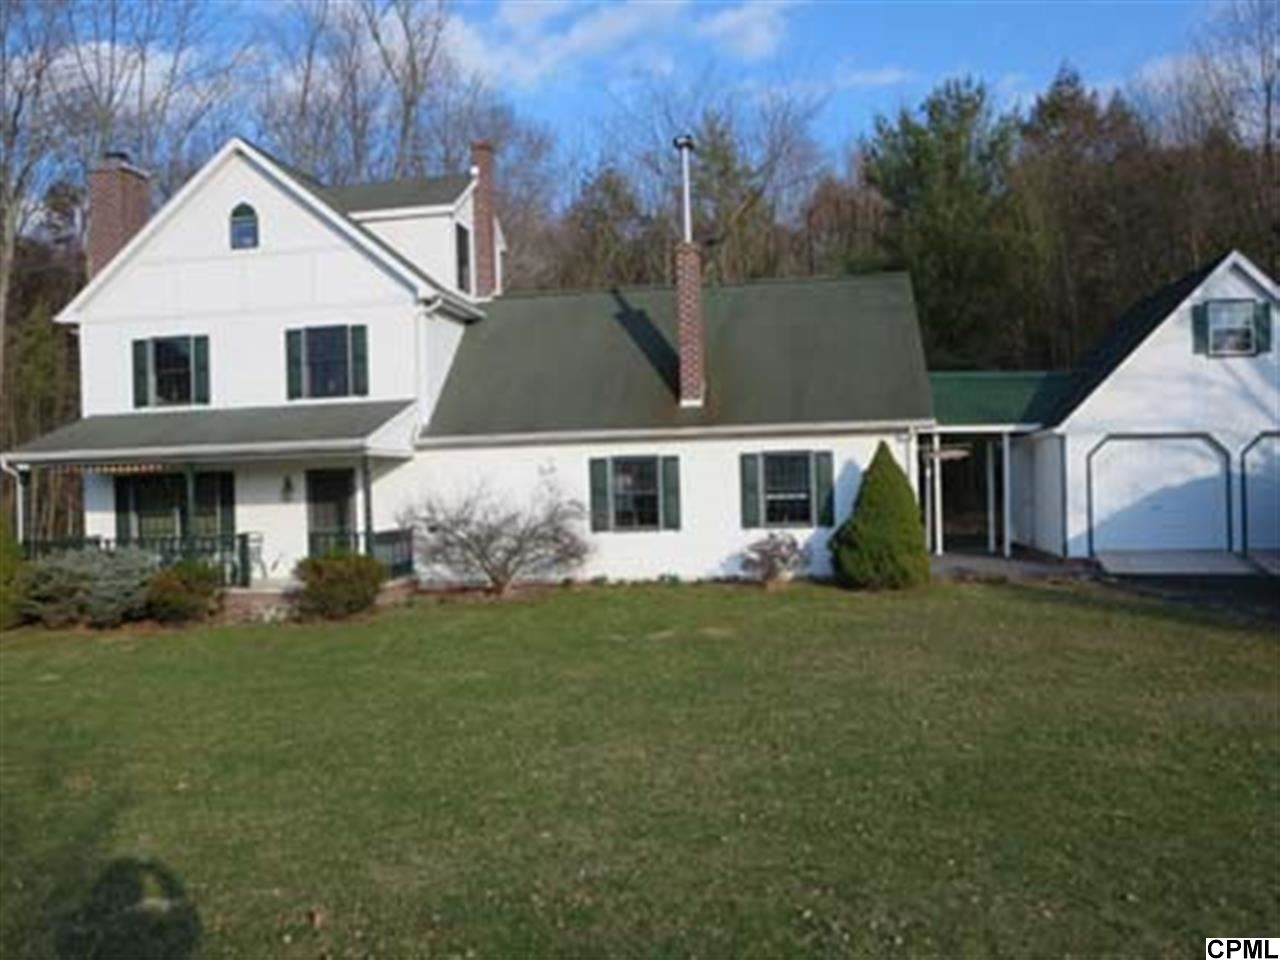 844 Lower Creek Rd, Milroy, PA 17063